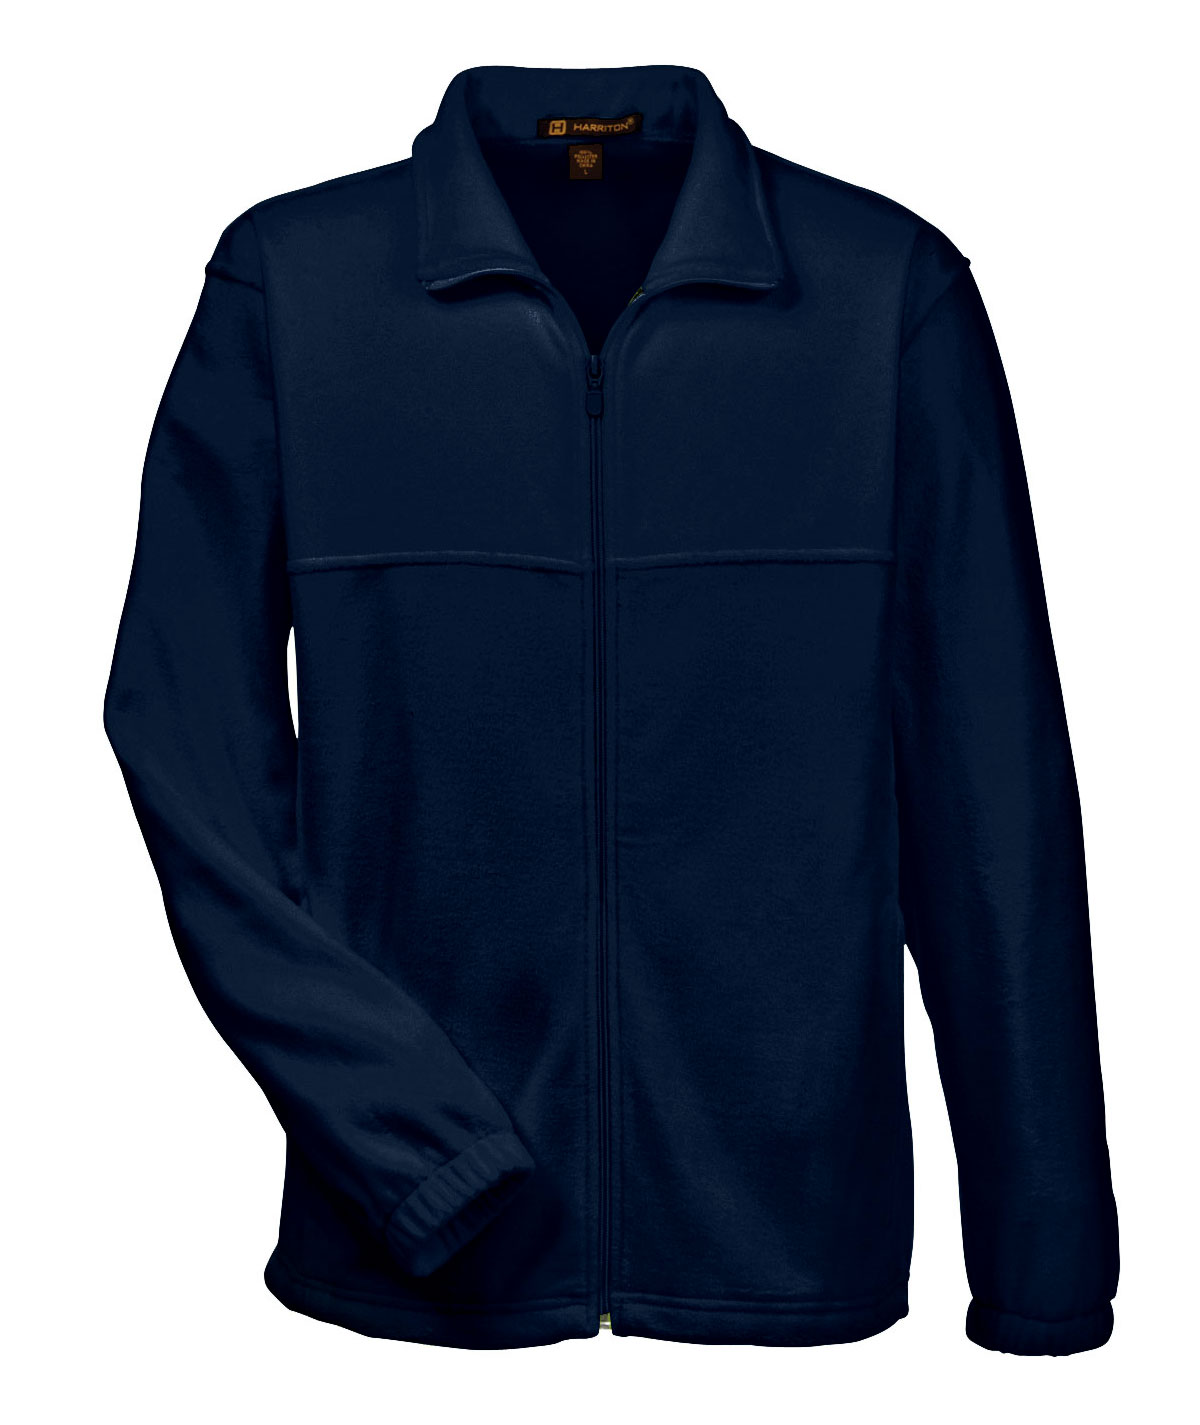 Harriton Mens 8 oz. Full-Zip Fleece Jacket